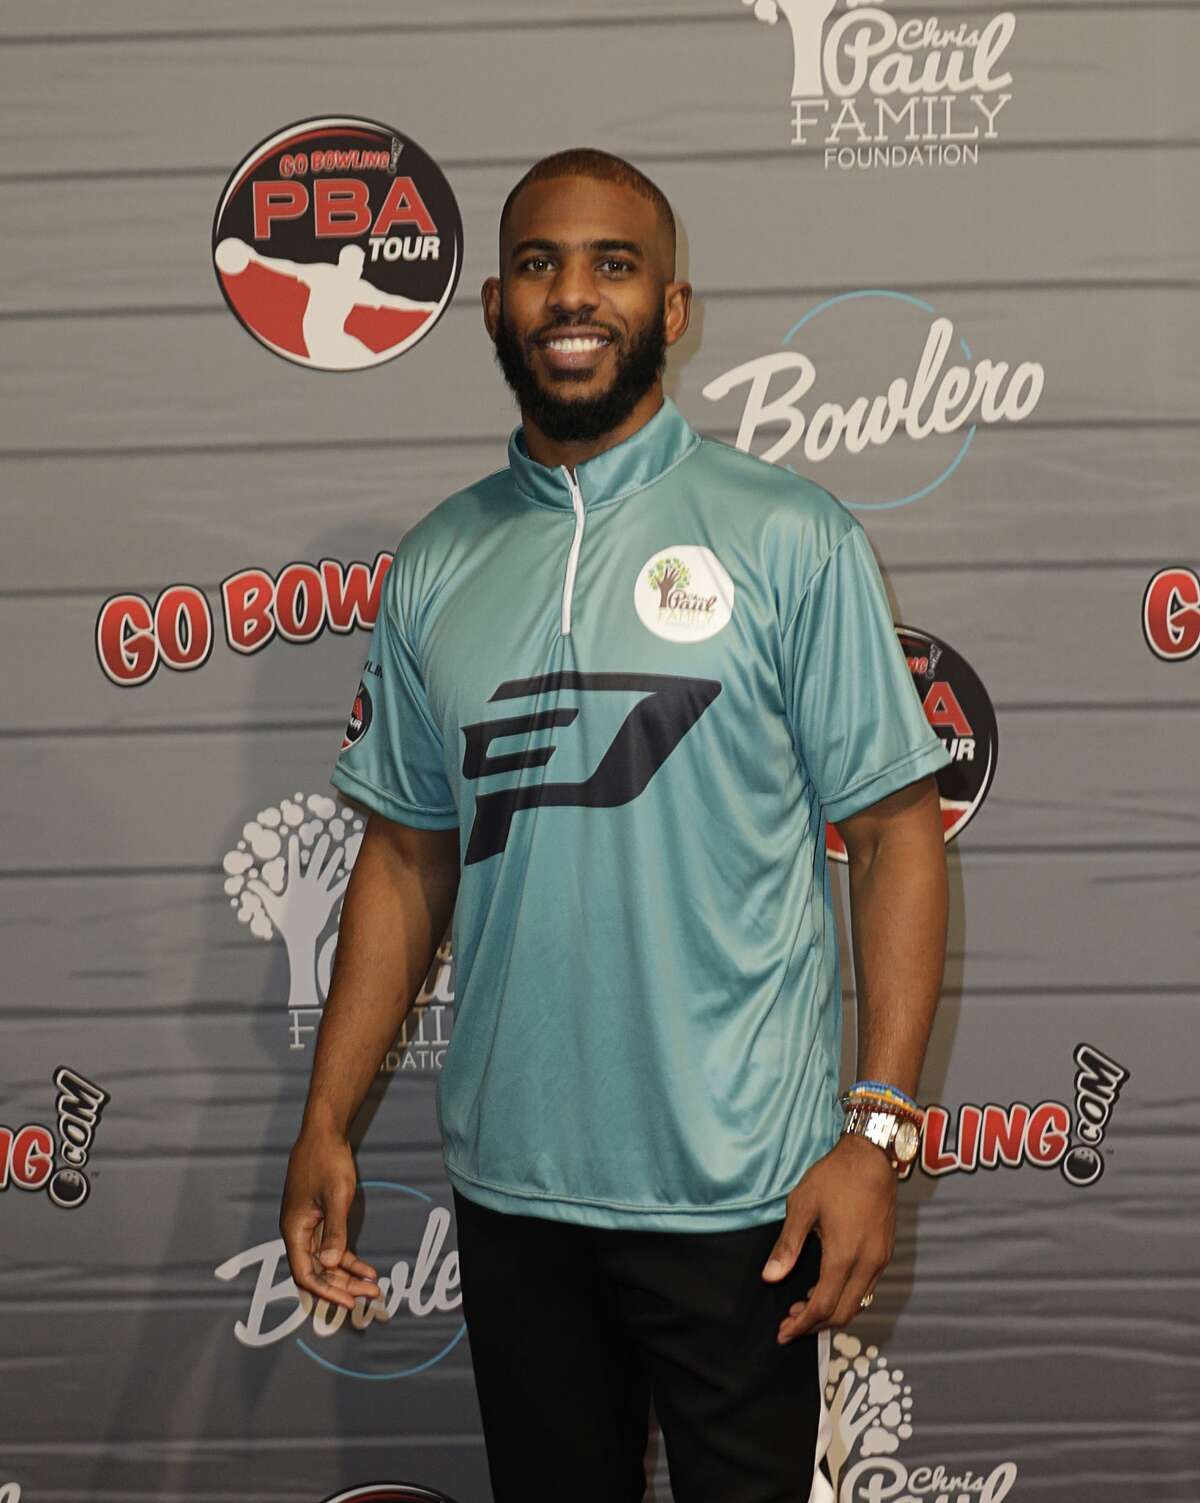 PHOTOS: See what celebrities showed up for Chris Paul's bowling event in The Woodlands. >>> Scroll through to see who participated in the CP3 PBA Celebrity Invitational.